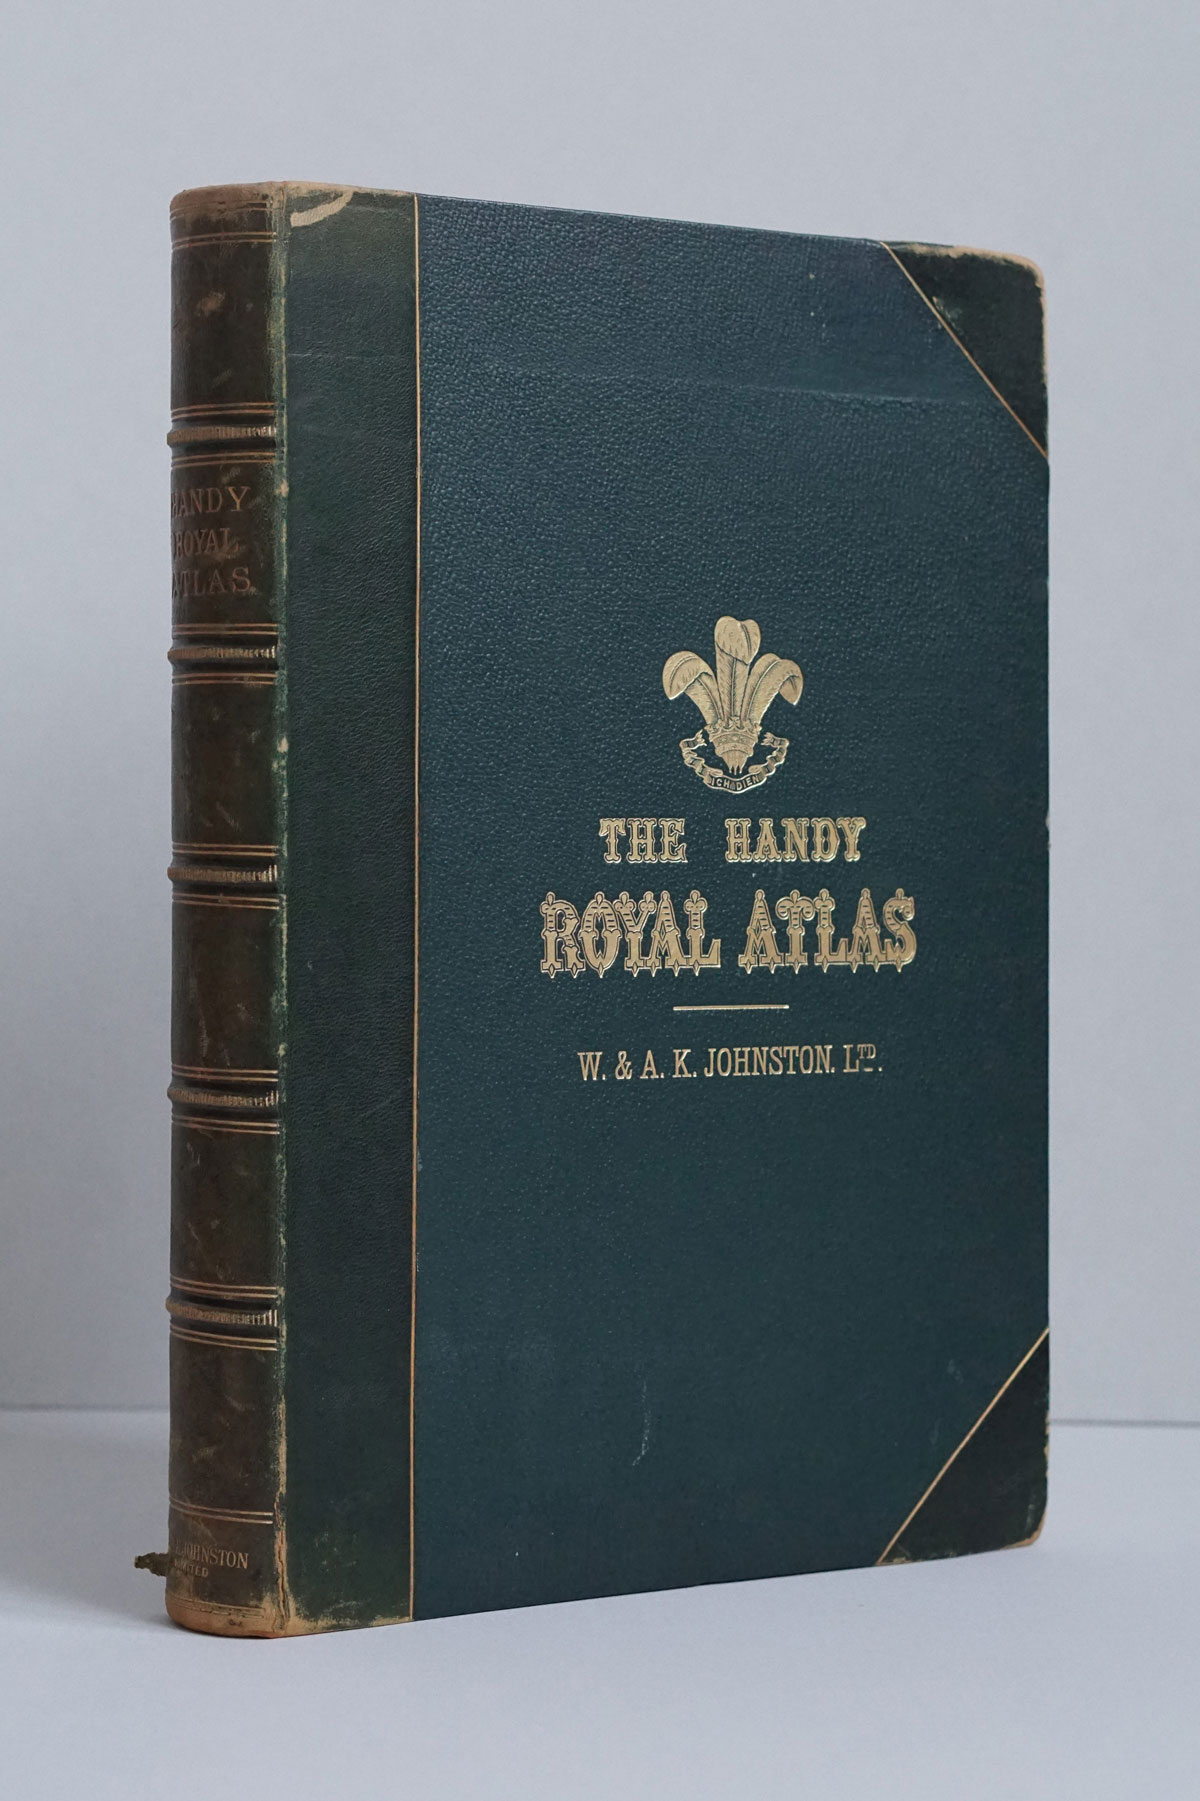 The Handy Royal Atlas of Modern Geography by W. & A. K. Johnston